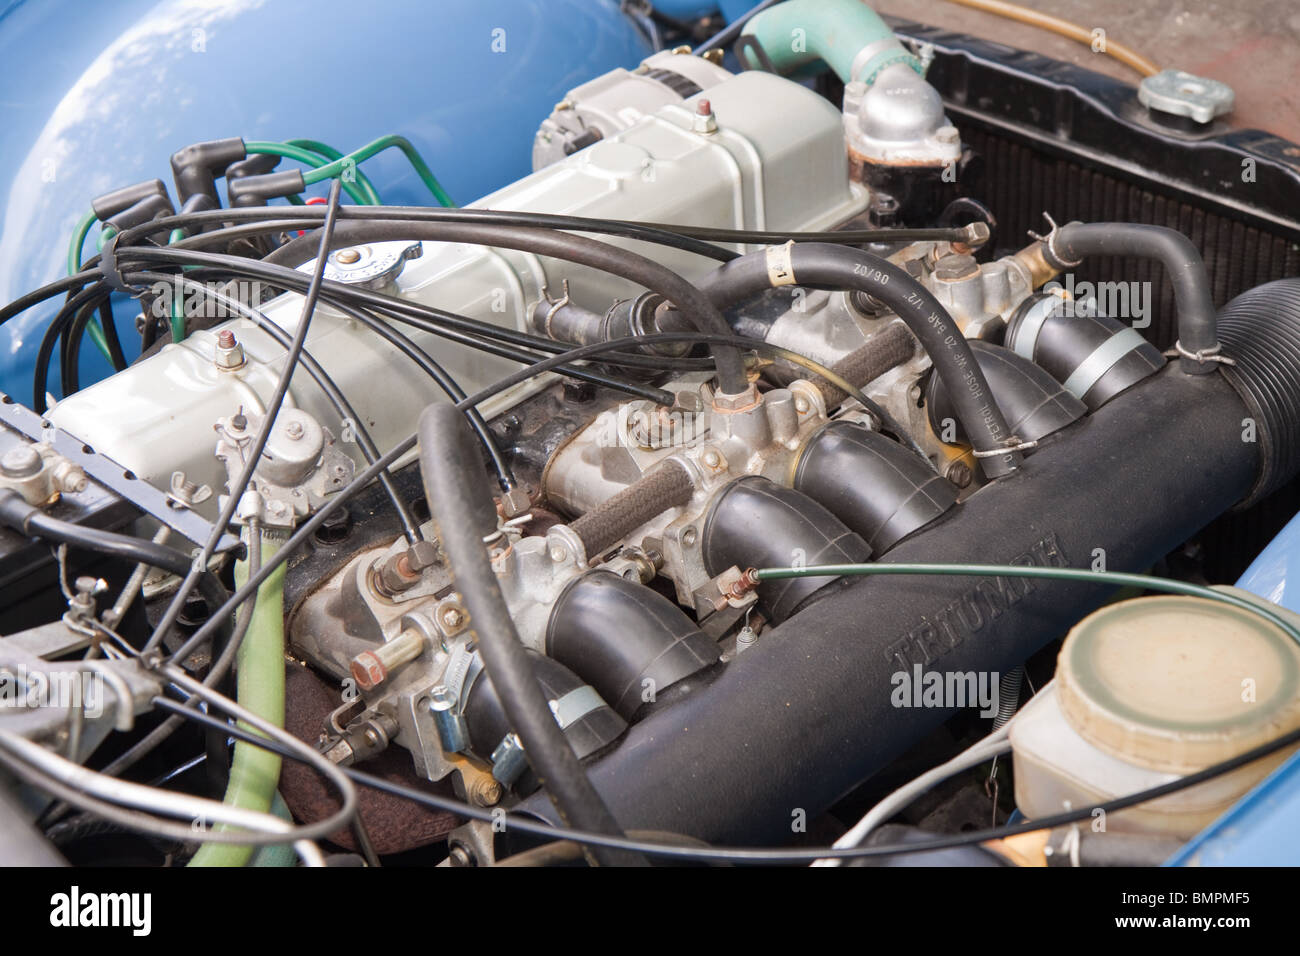 Triumph Tr6 Six Cylinder Fuel Injected Engine Stock Photo 30002537